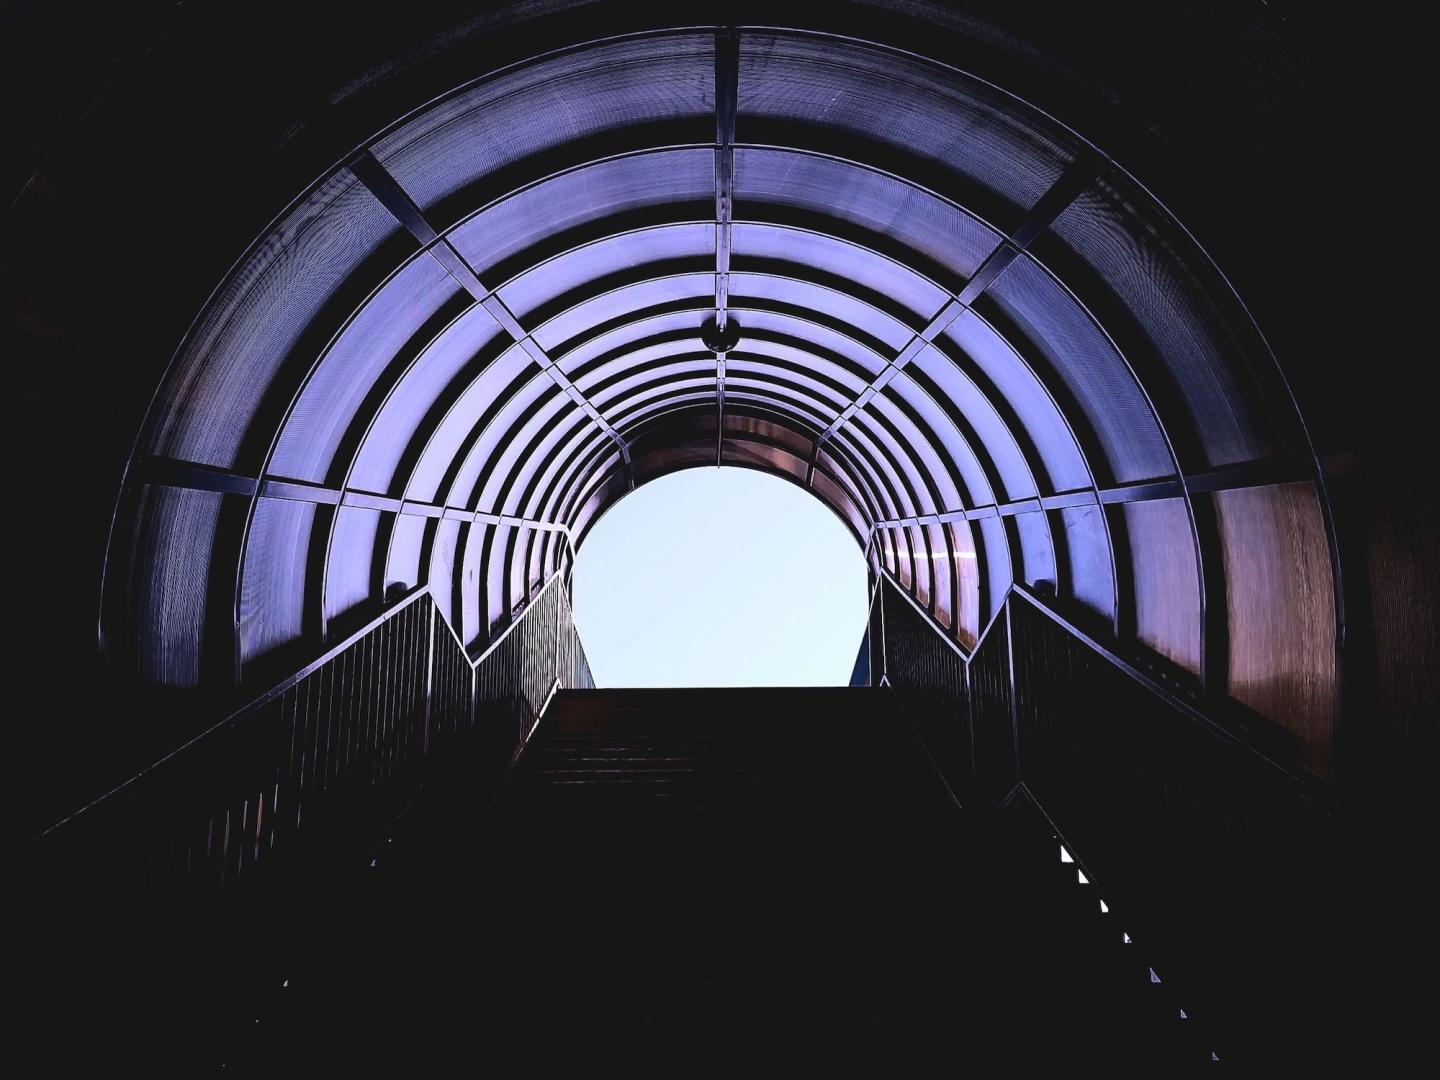 Image of stairs going up in a tunnel with a light ahead